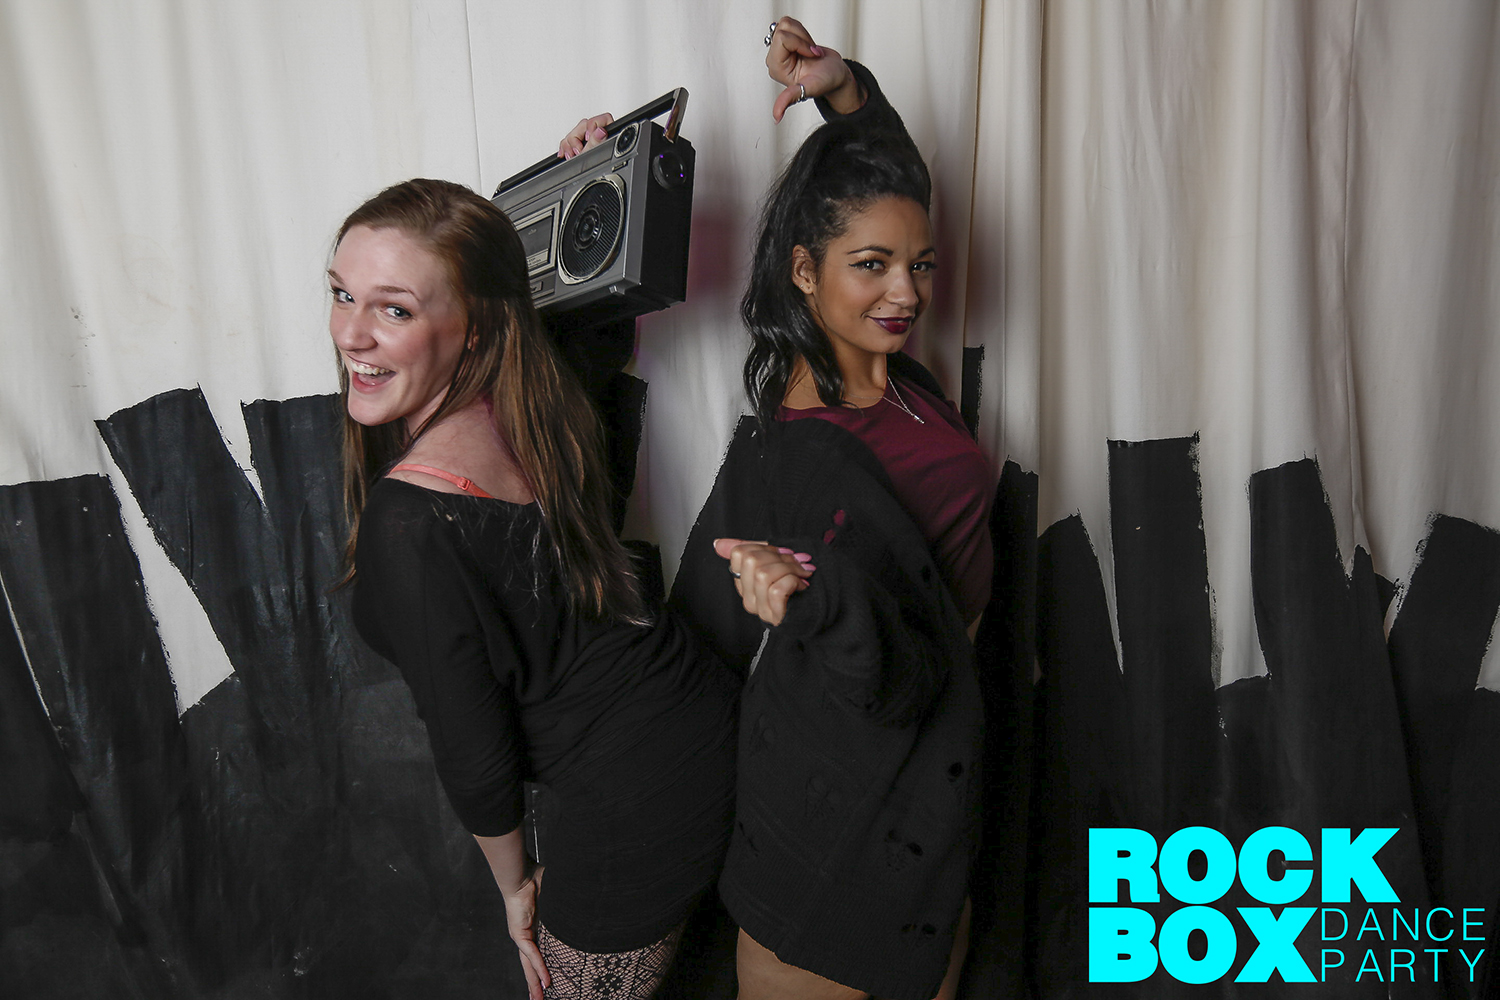 Rock box feb 2015-0055.jpg